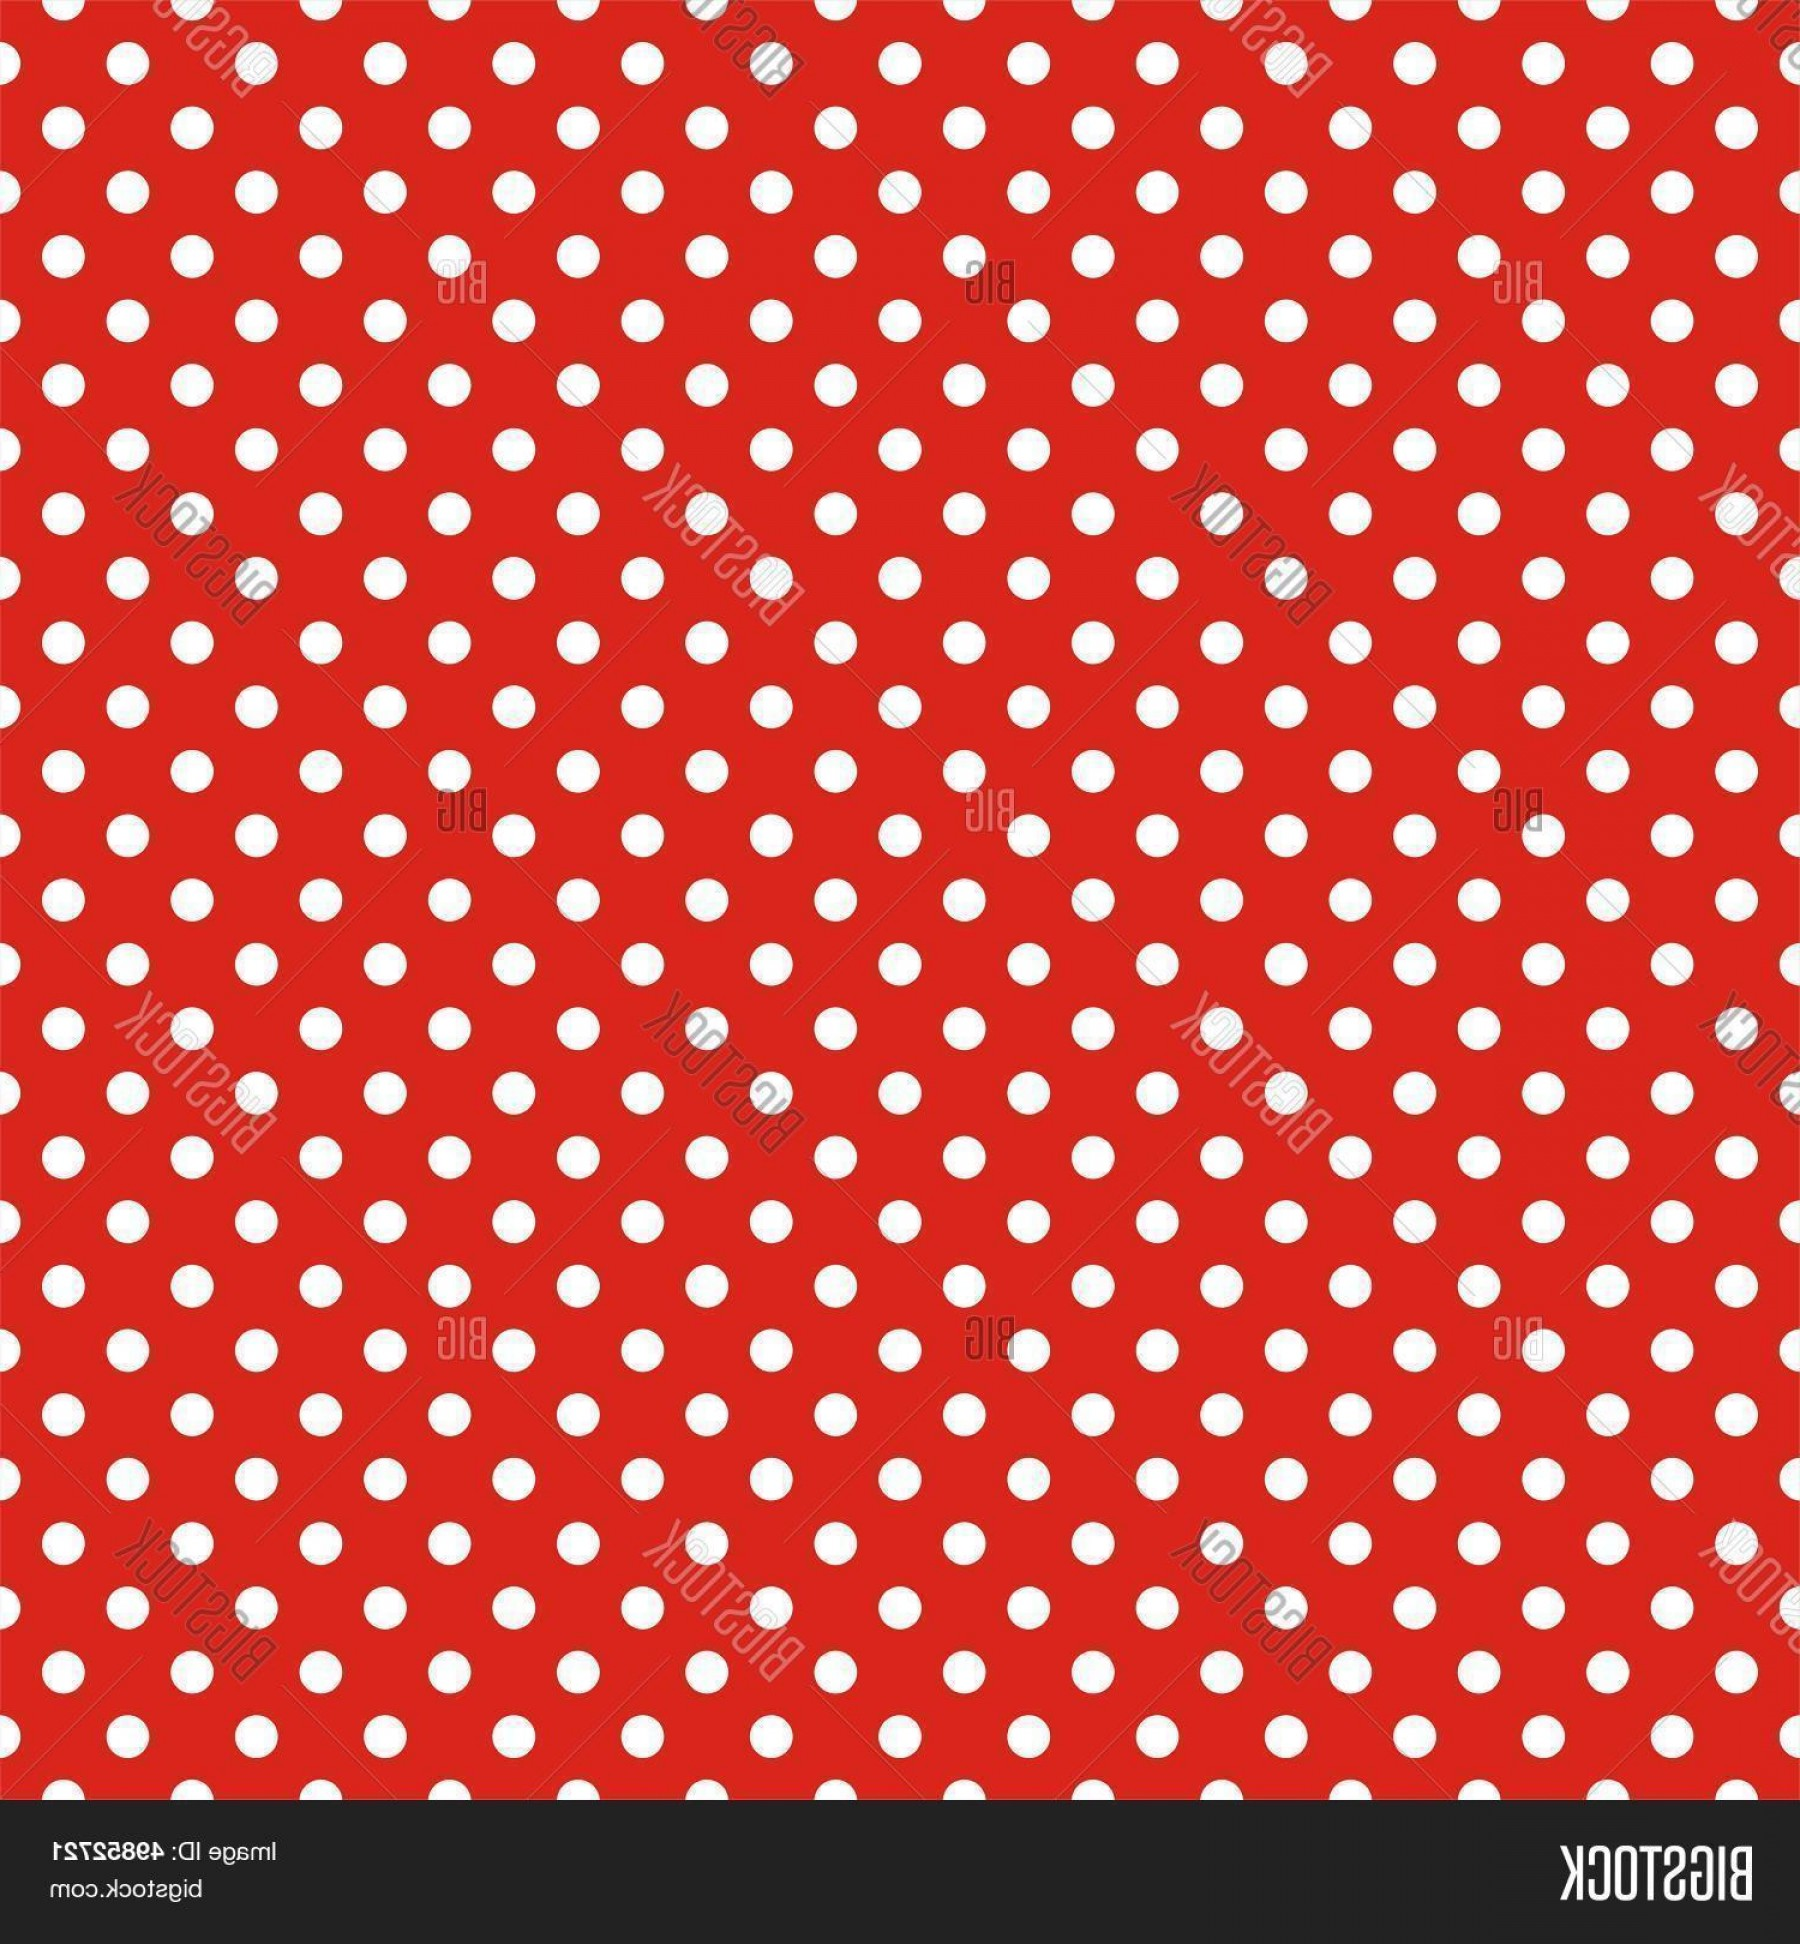 Polka Dot Background Vector Y: Stock Vector Retro Seamless Vector Pattern Or Texture With White Polka Dots On Red Background